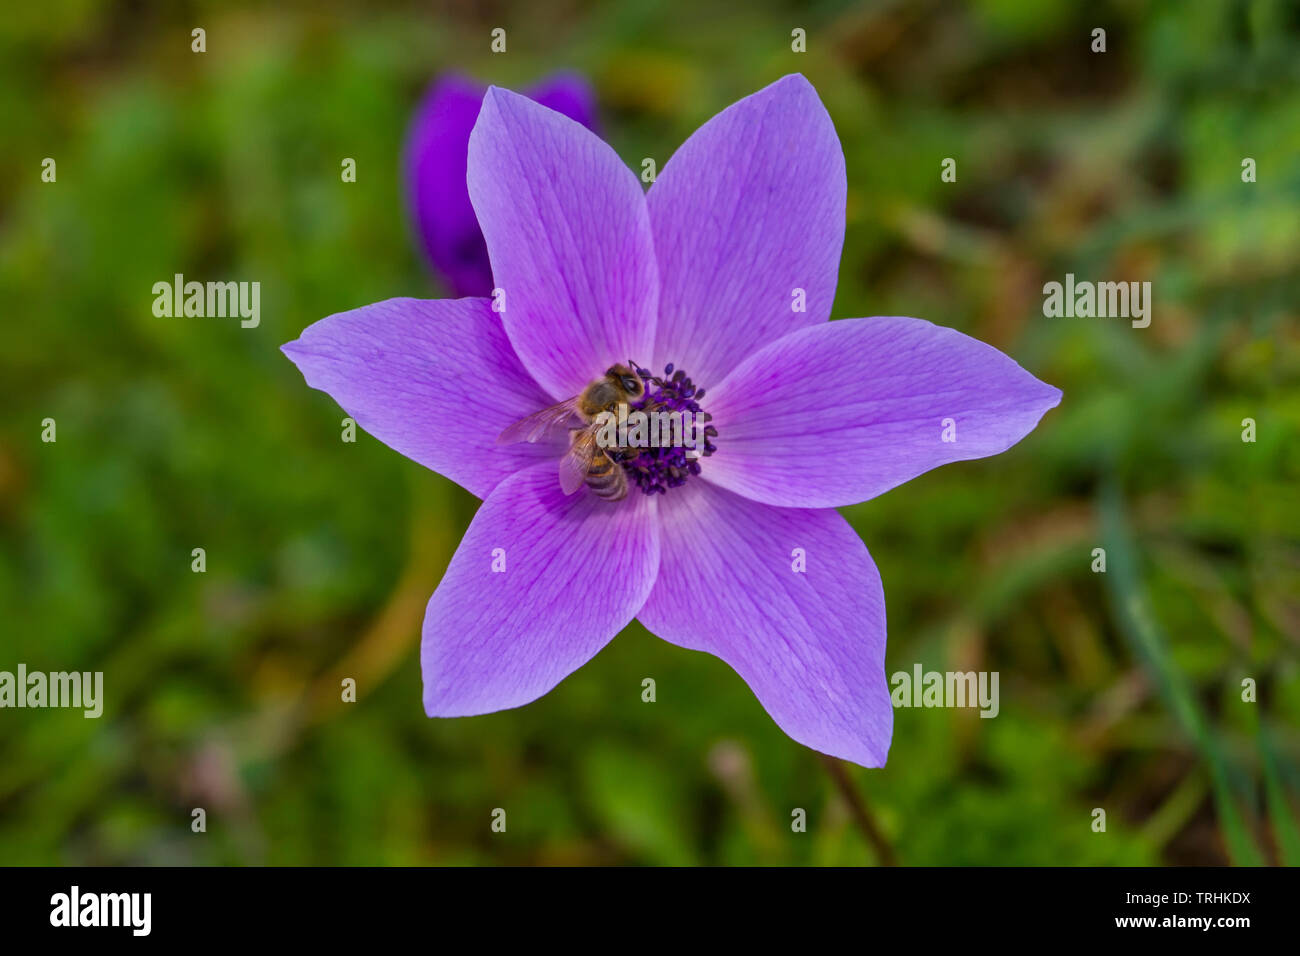 The appearance of a Lila-colored anemone flower from above - Stock Image